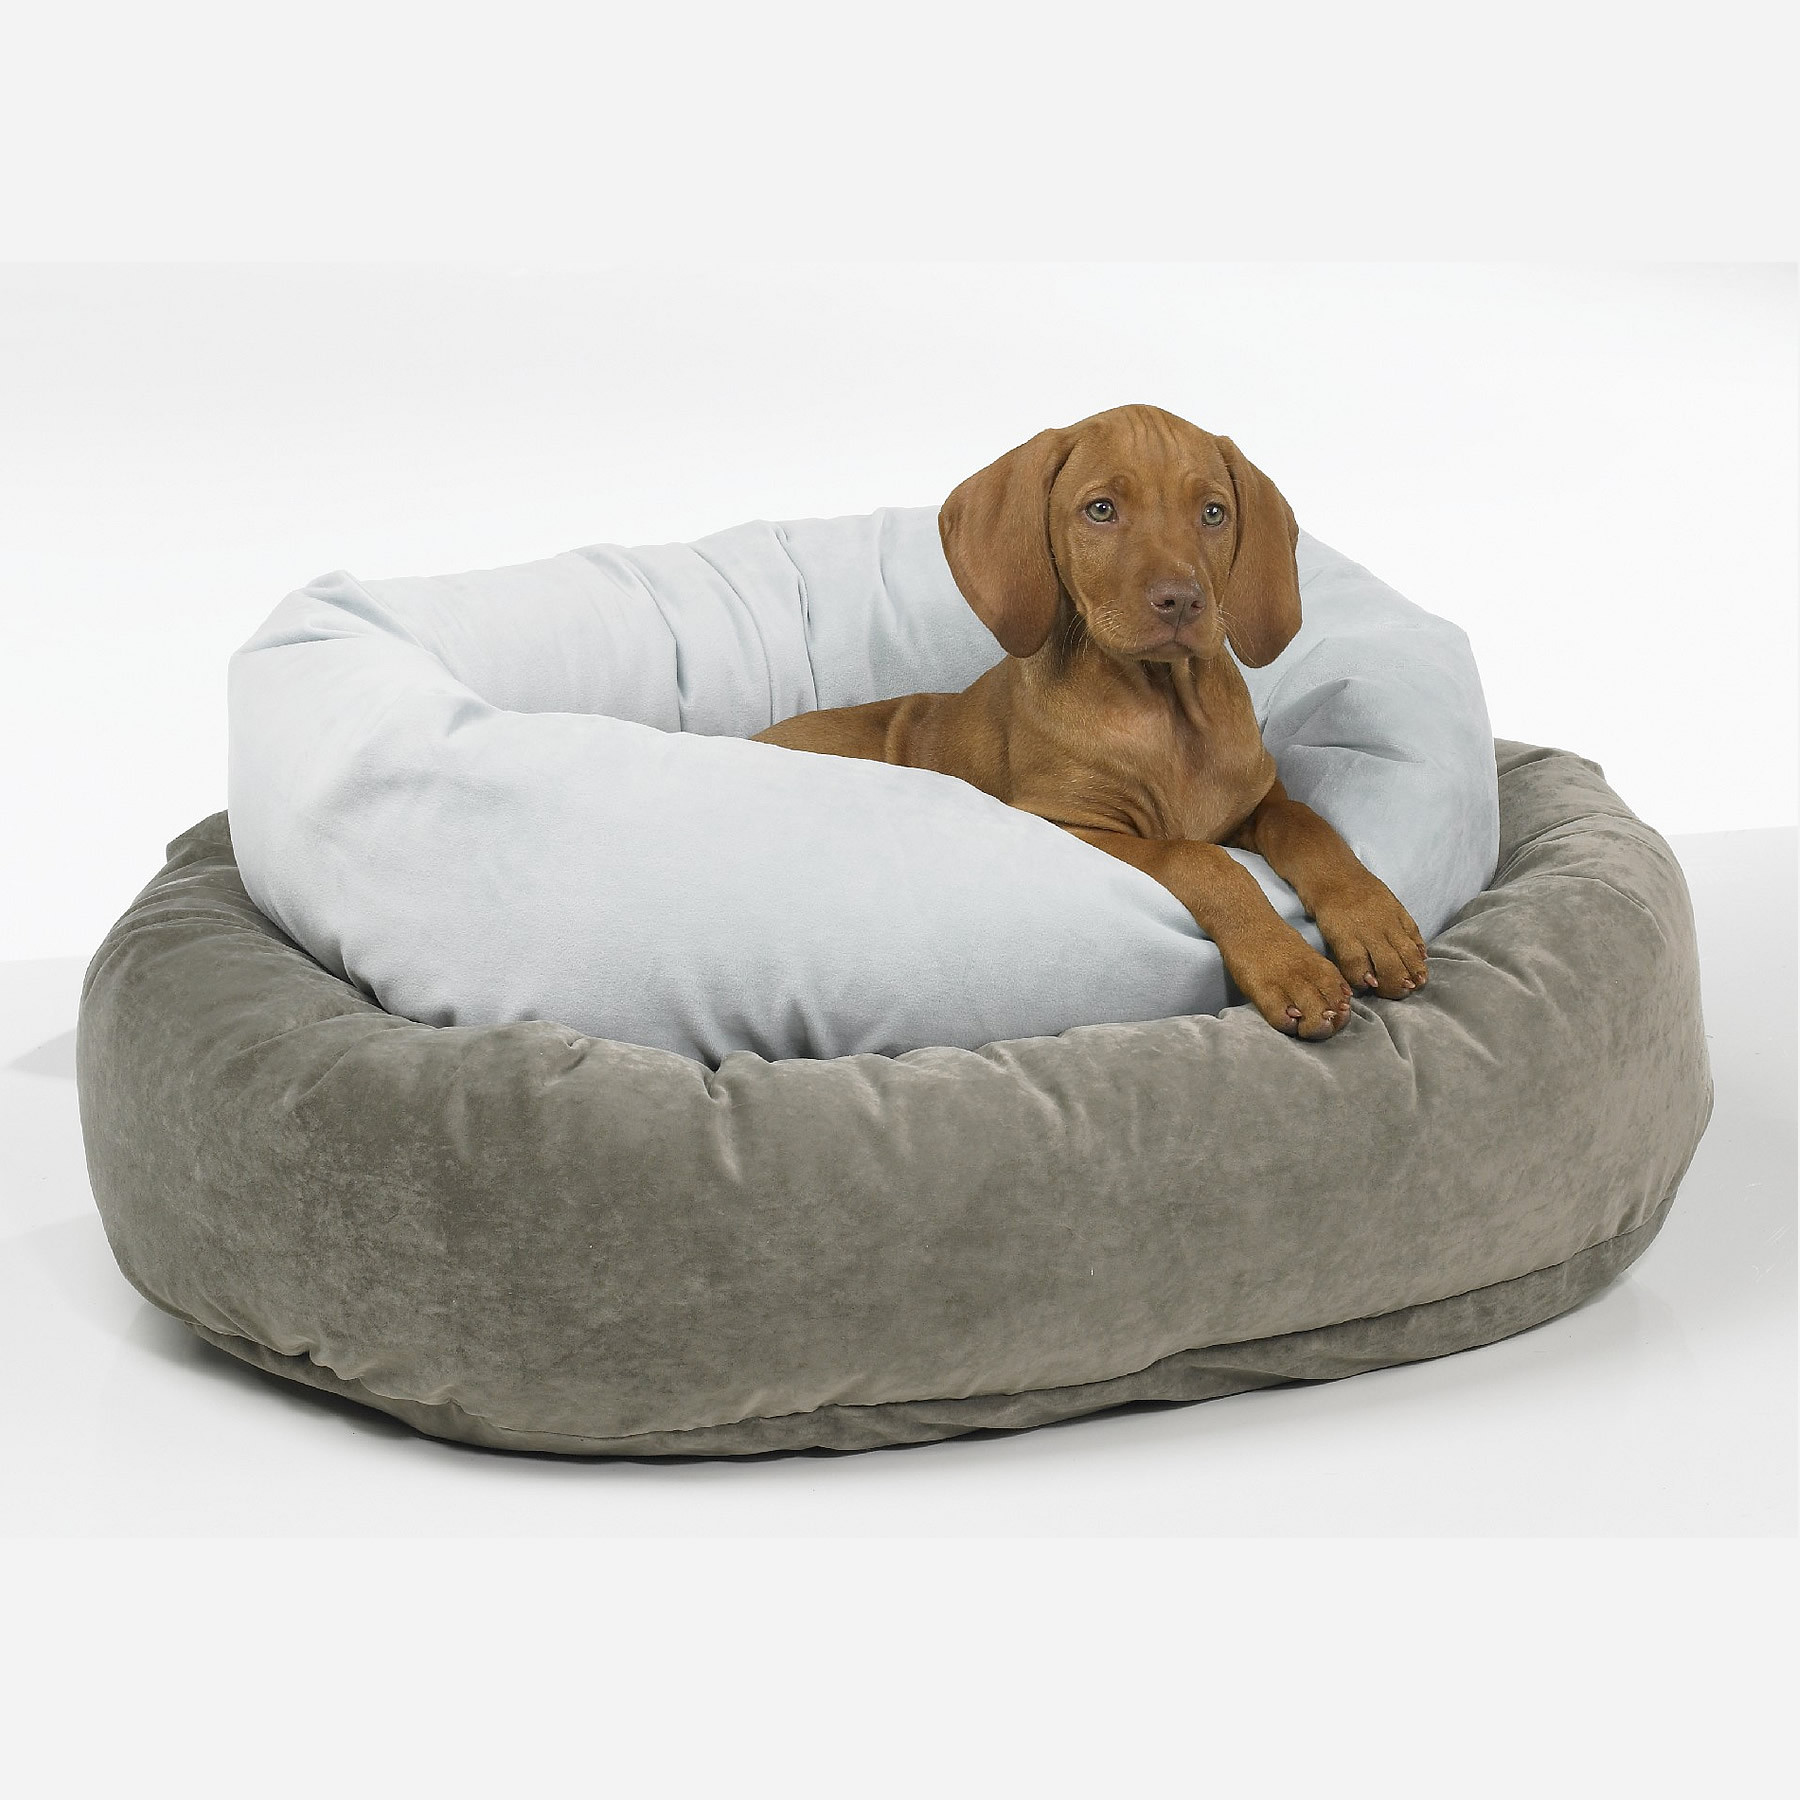 foam proof usa bed dog treat puplounge shop memory pupcuddle orthopedic orthopaedic chew a products